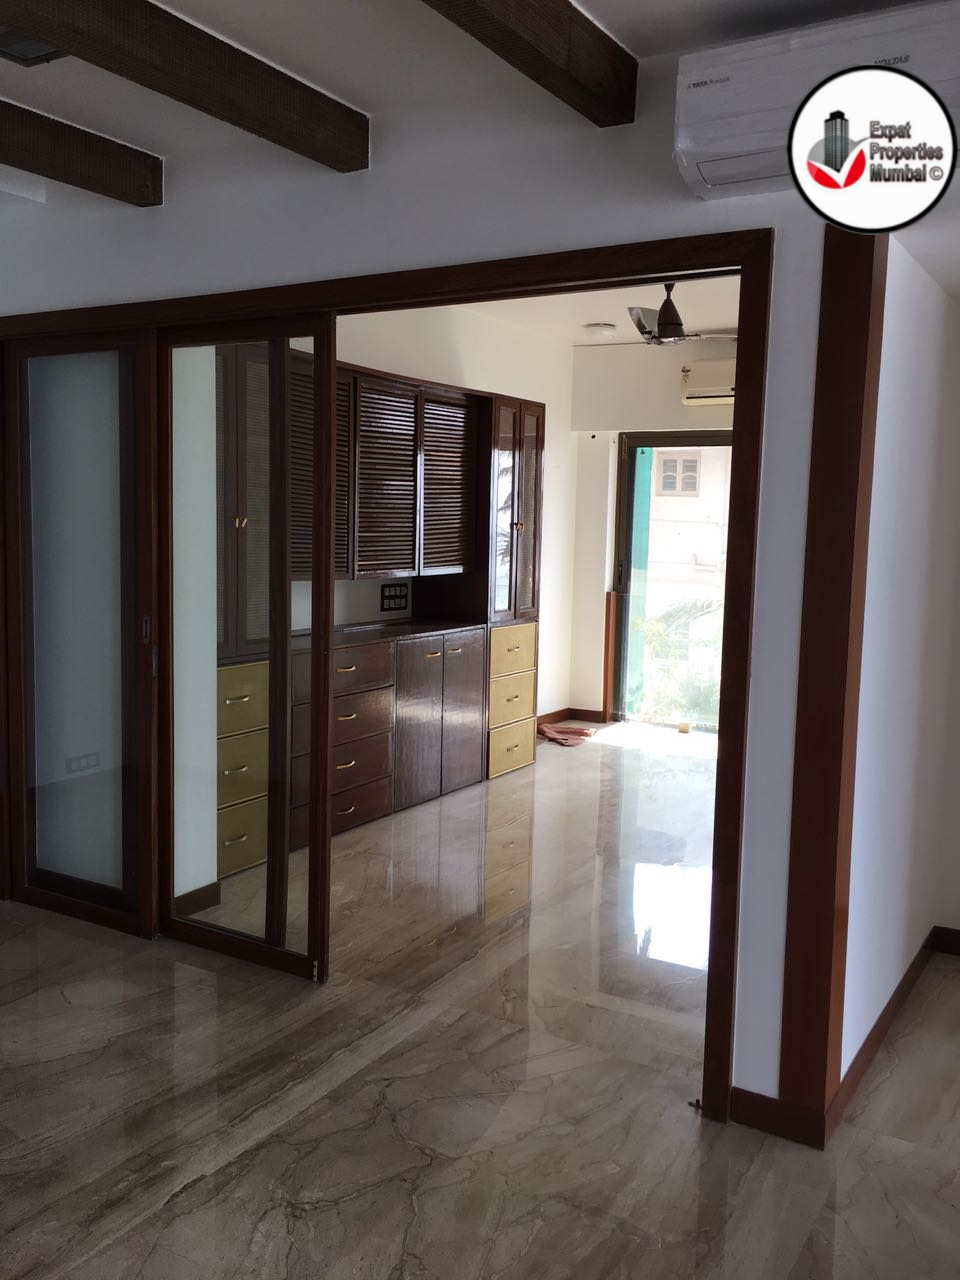 3 Bhk Apartment For Rent In Juhu 1500 Sq Ft Carpet Area